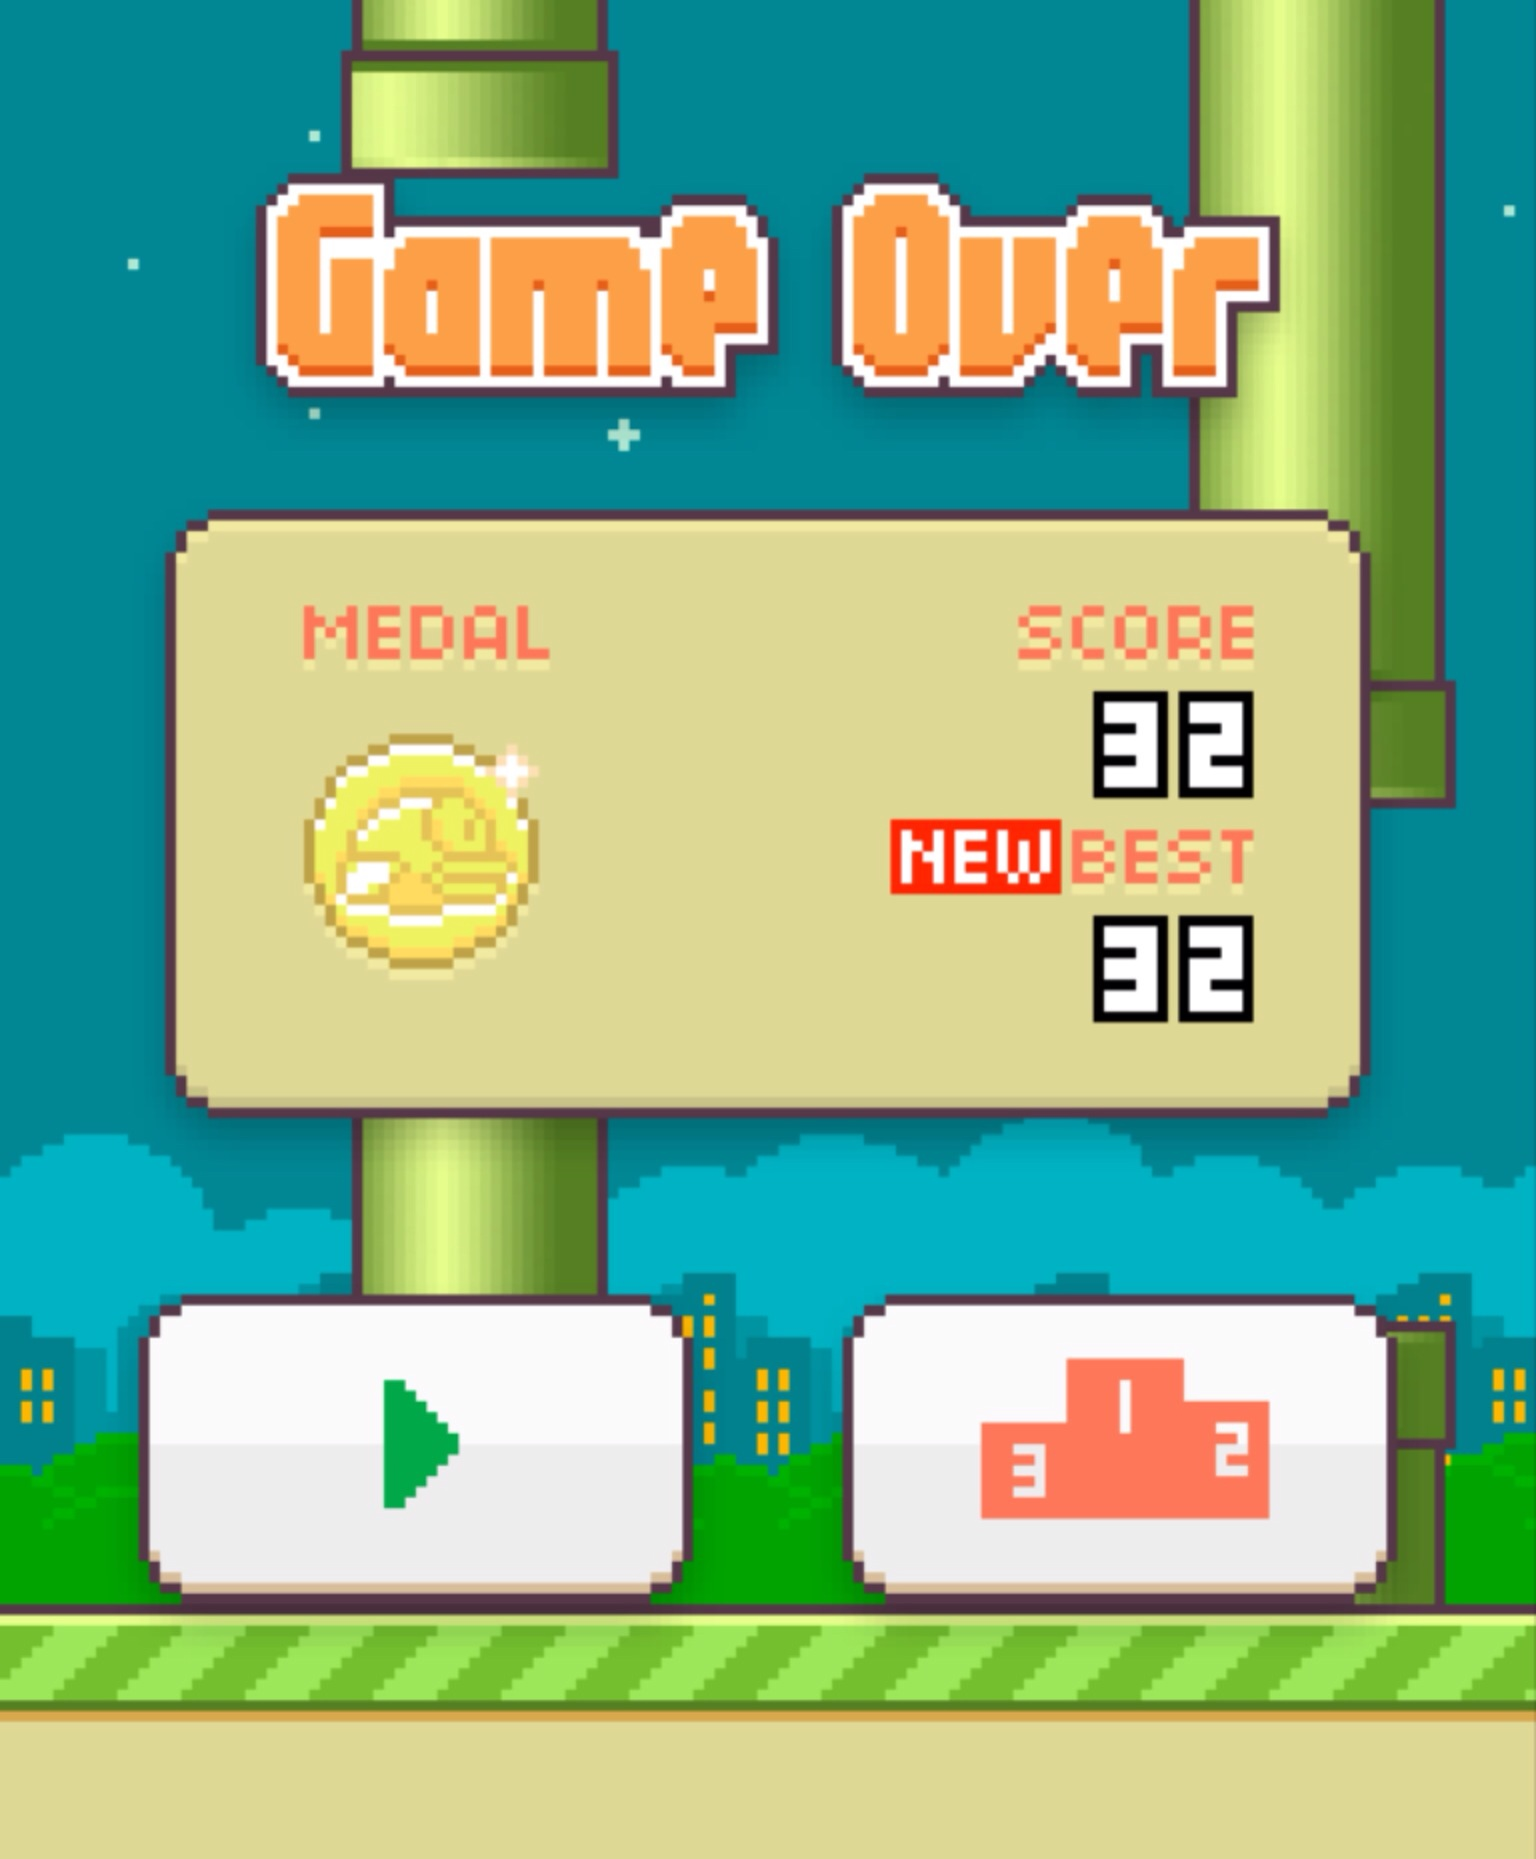 highscore